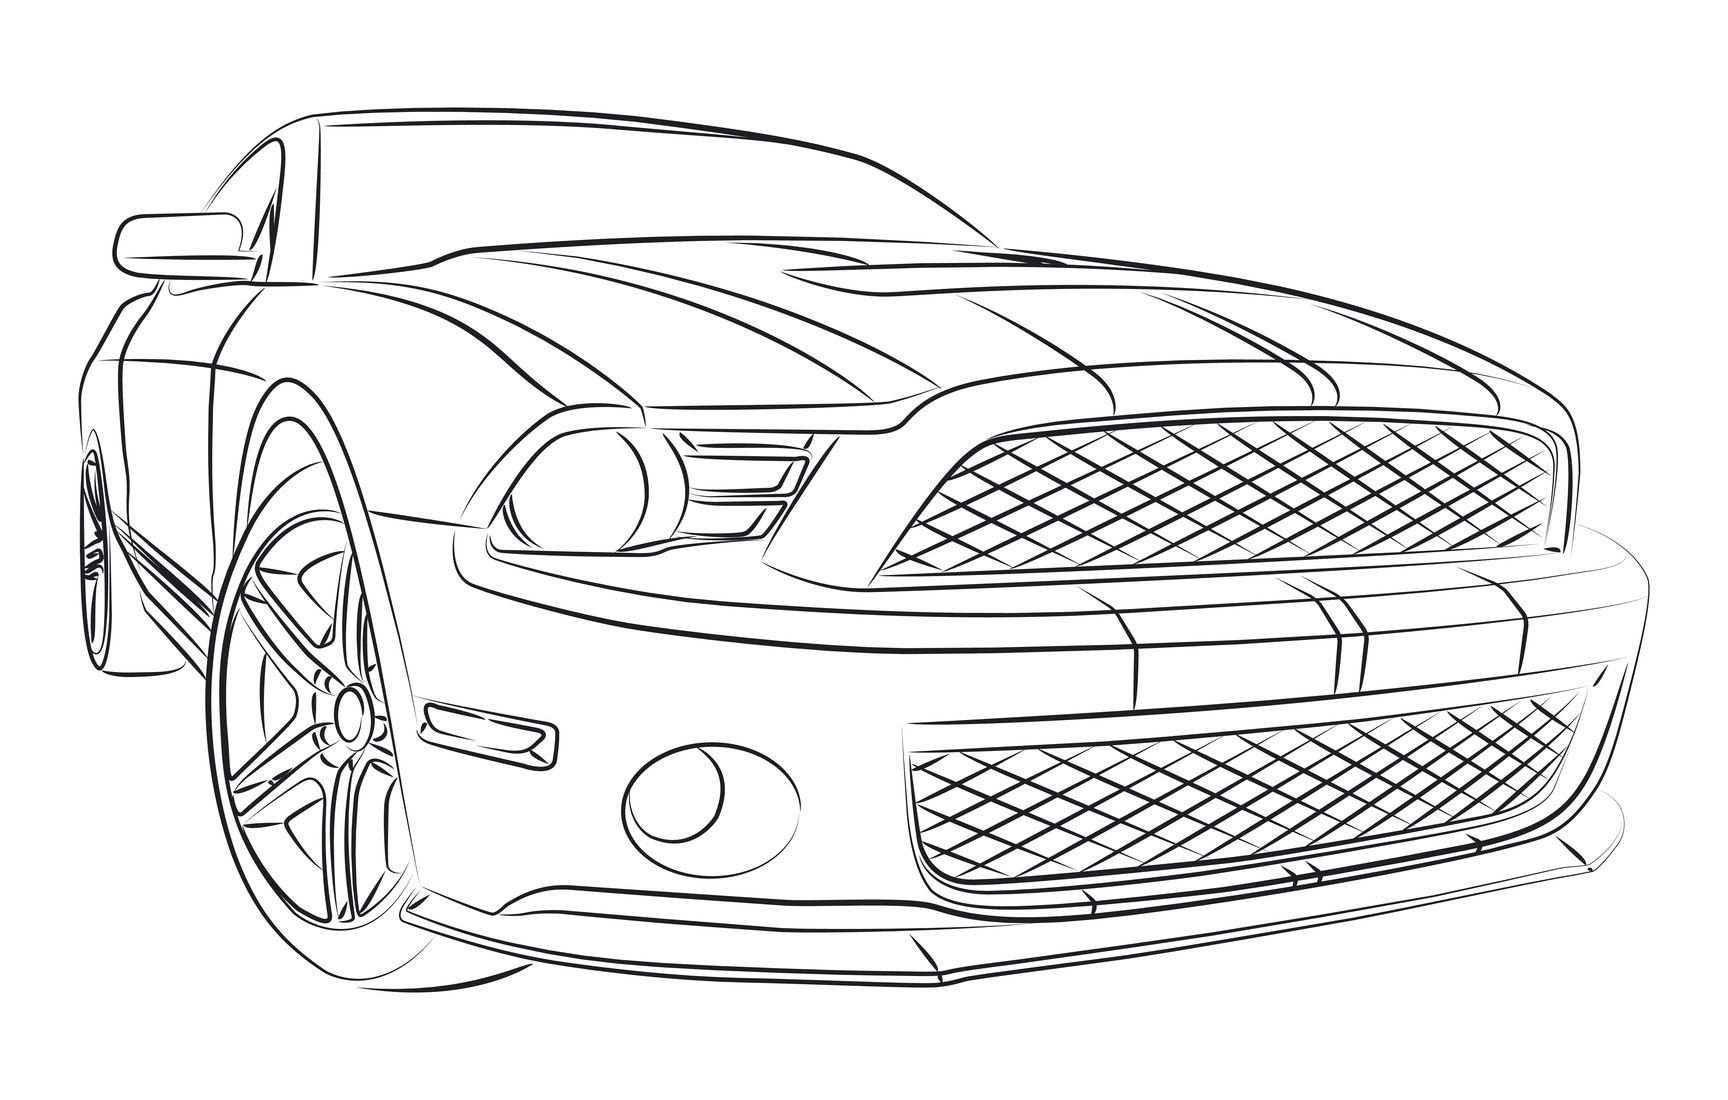 how to draw a car - Google Search | places to go | Pinterest